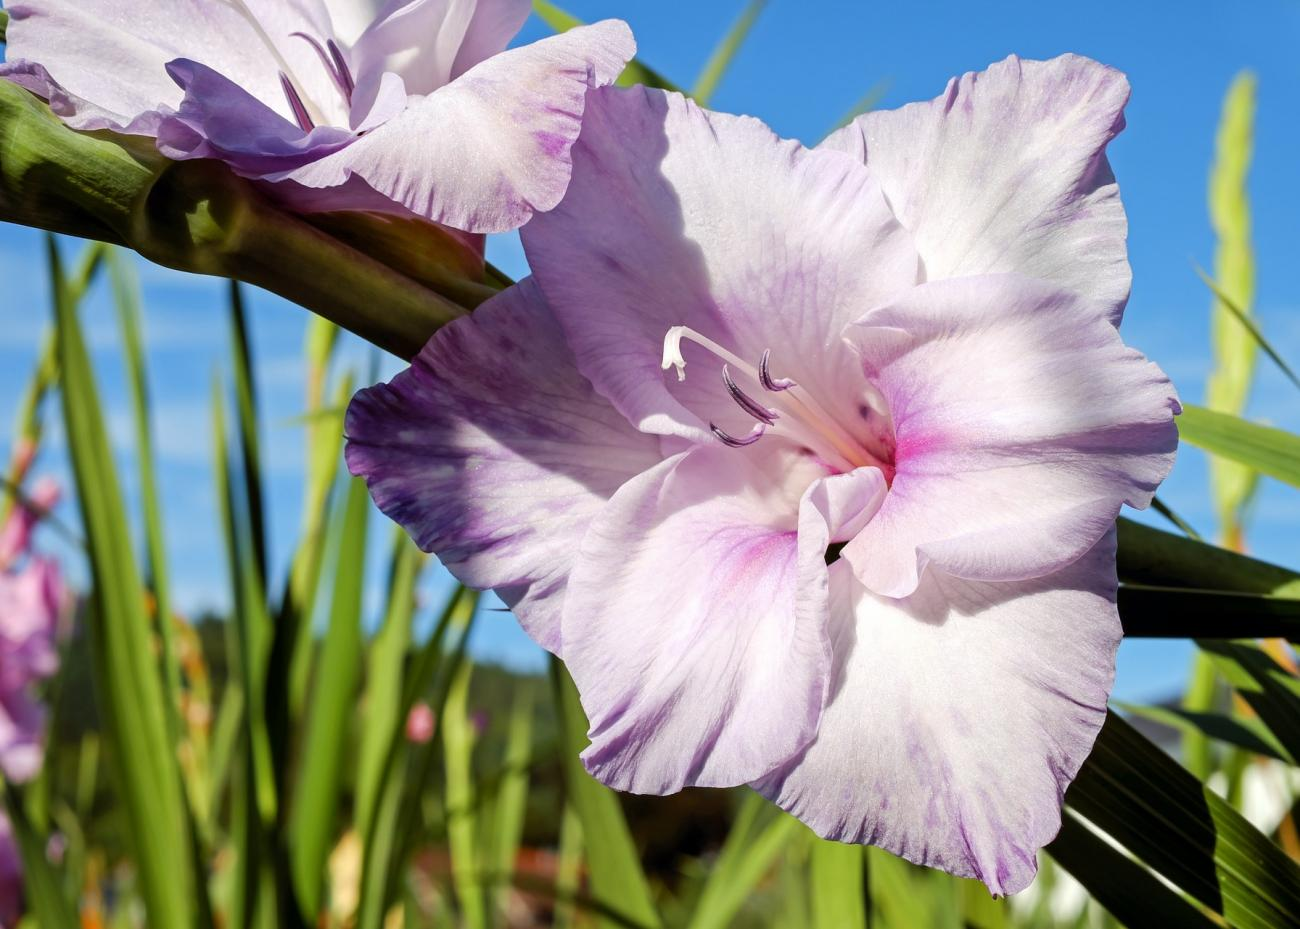 Gladiolus How To Plant Grow And Care For Gladiolus The Old Farmer S Almanac